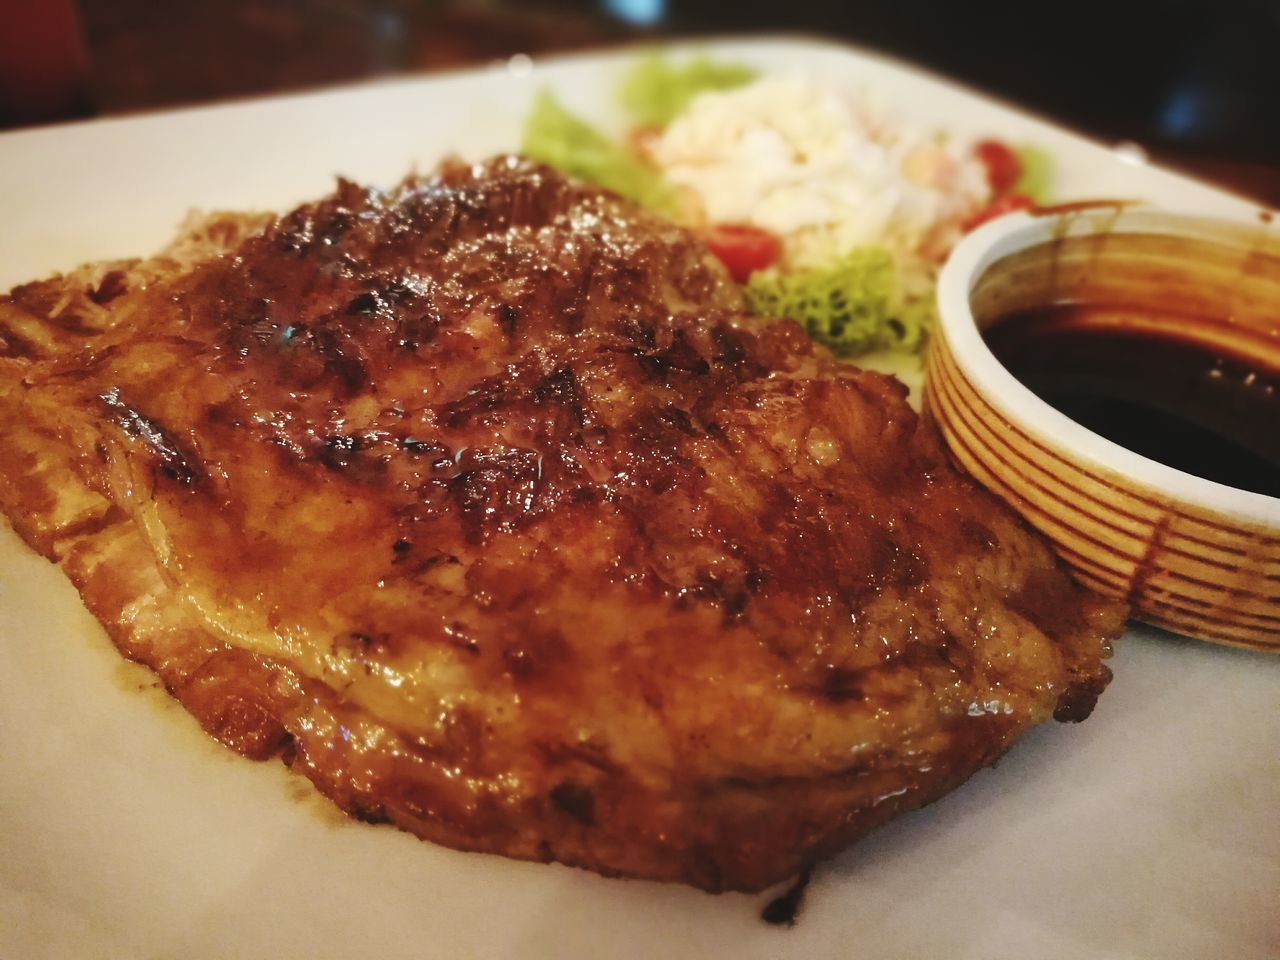 food and drink, food, freshness, meat, serving size, ready-to-eat, indoors, meal, close-up, healthy eating, no people, plate, fried chicken, rib, pork